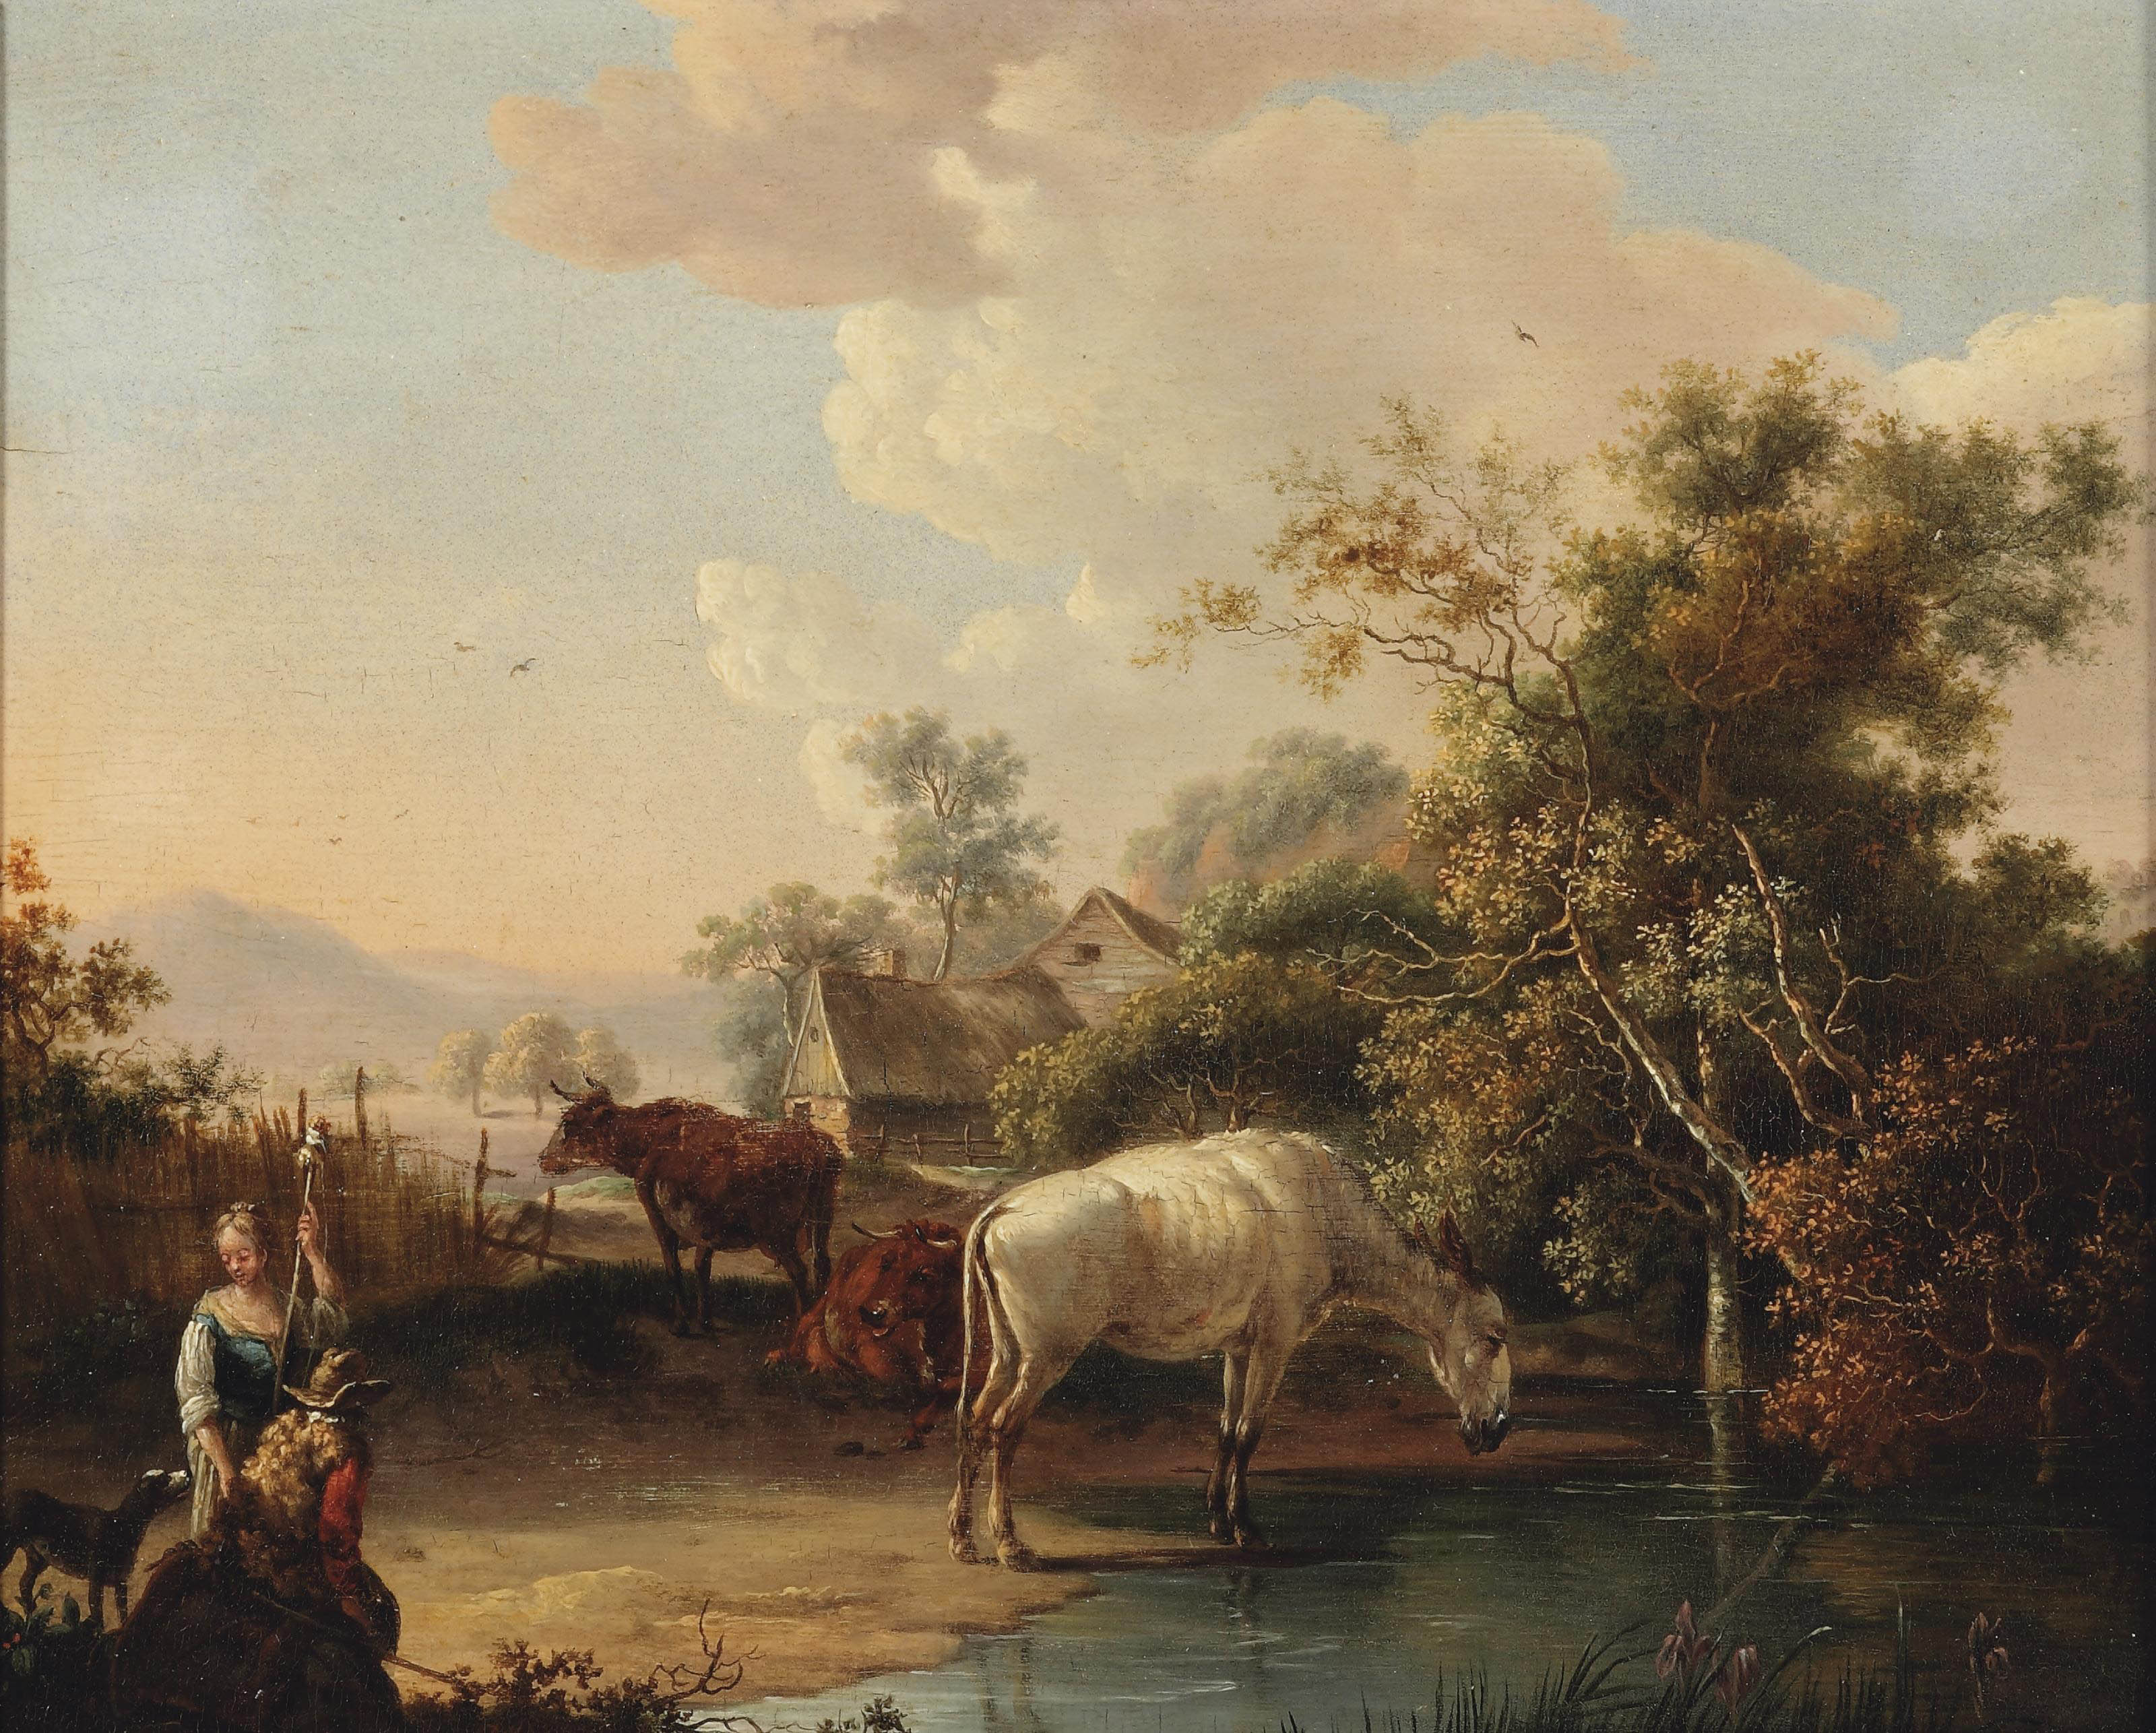 A hilside landscape with figures and cattle on a path, a farmhouse in the distance